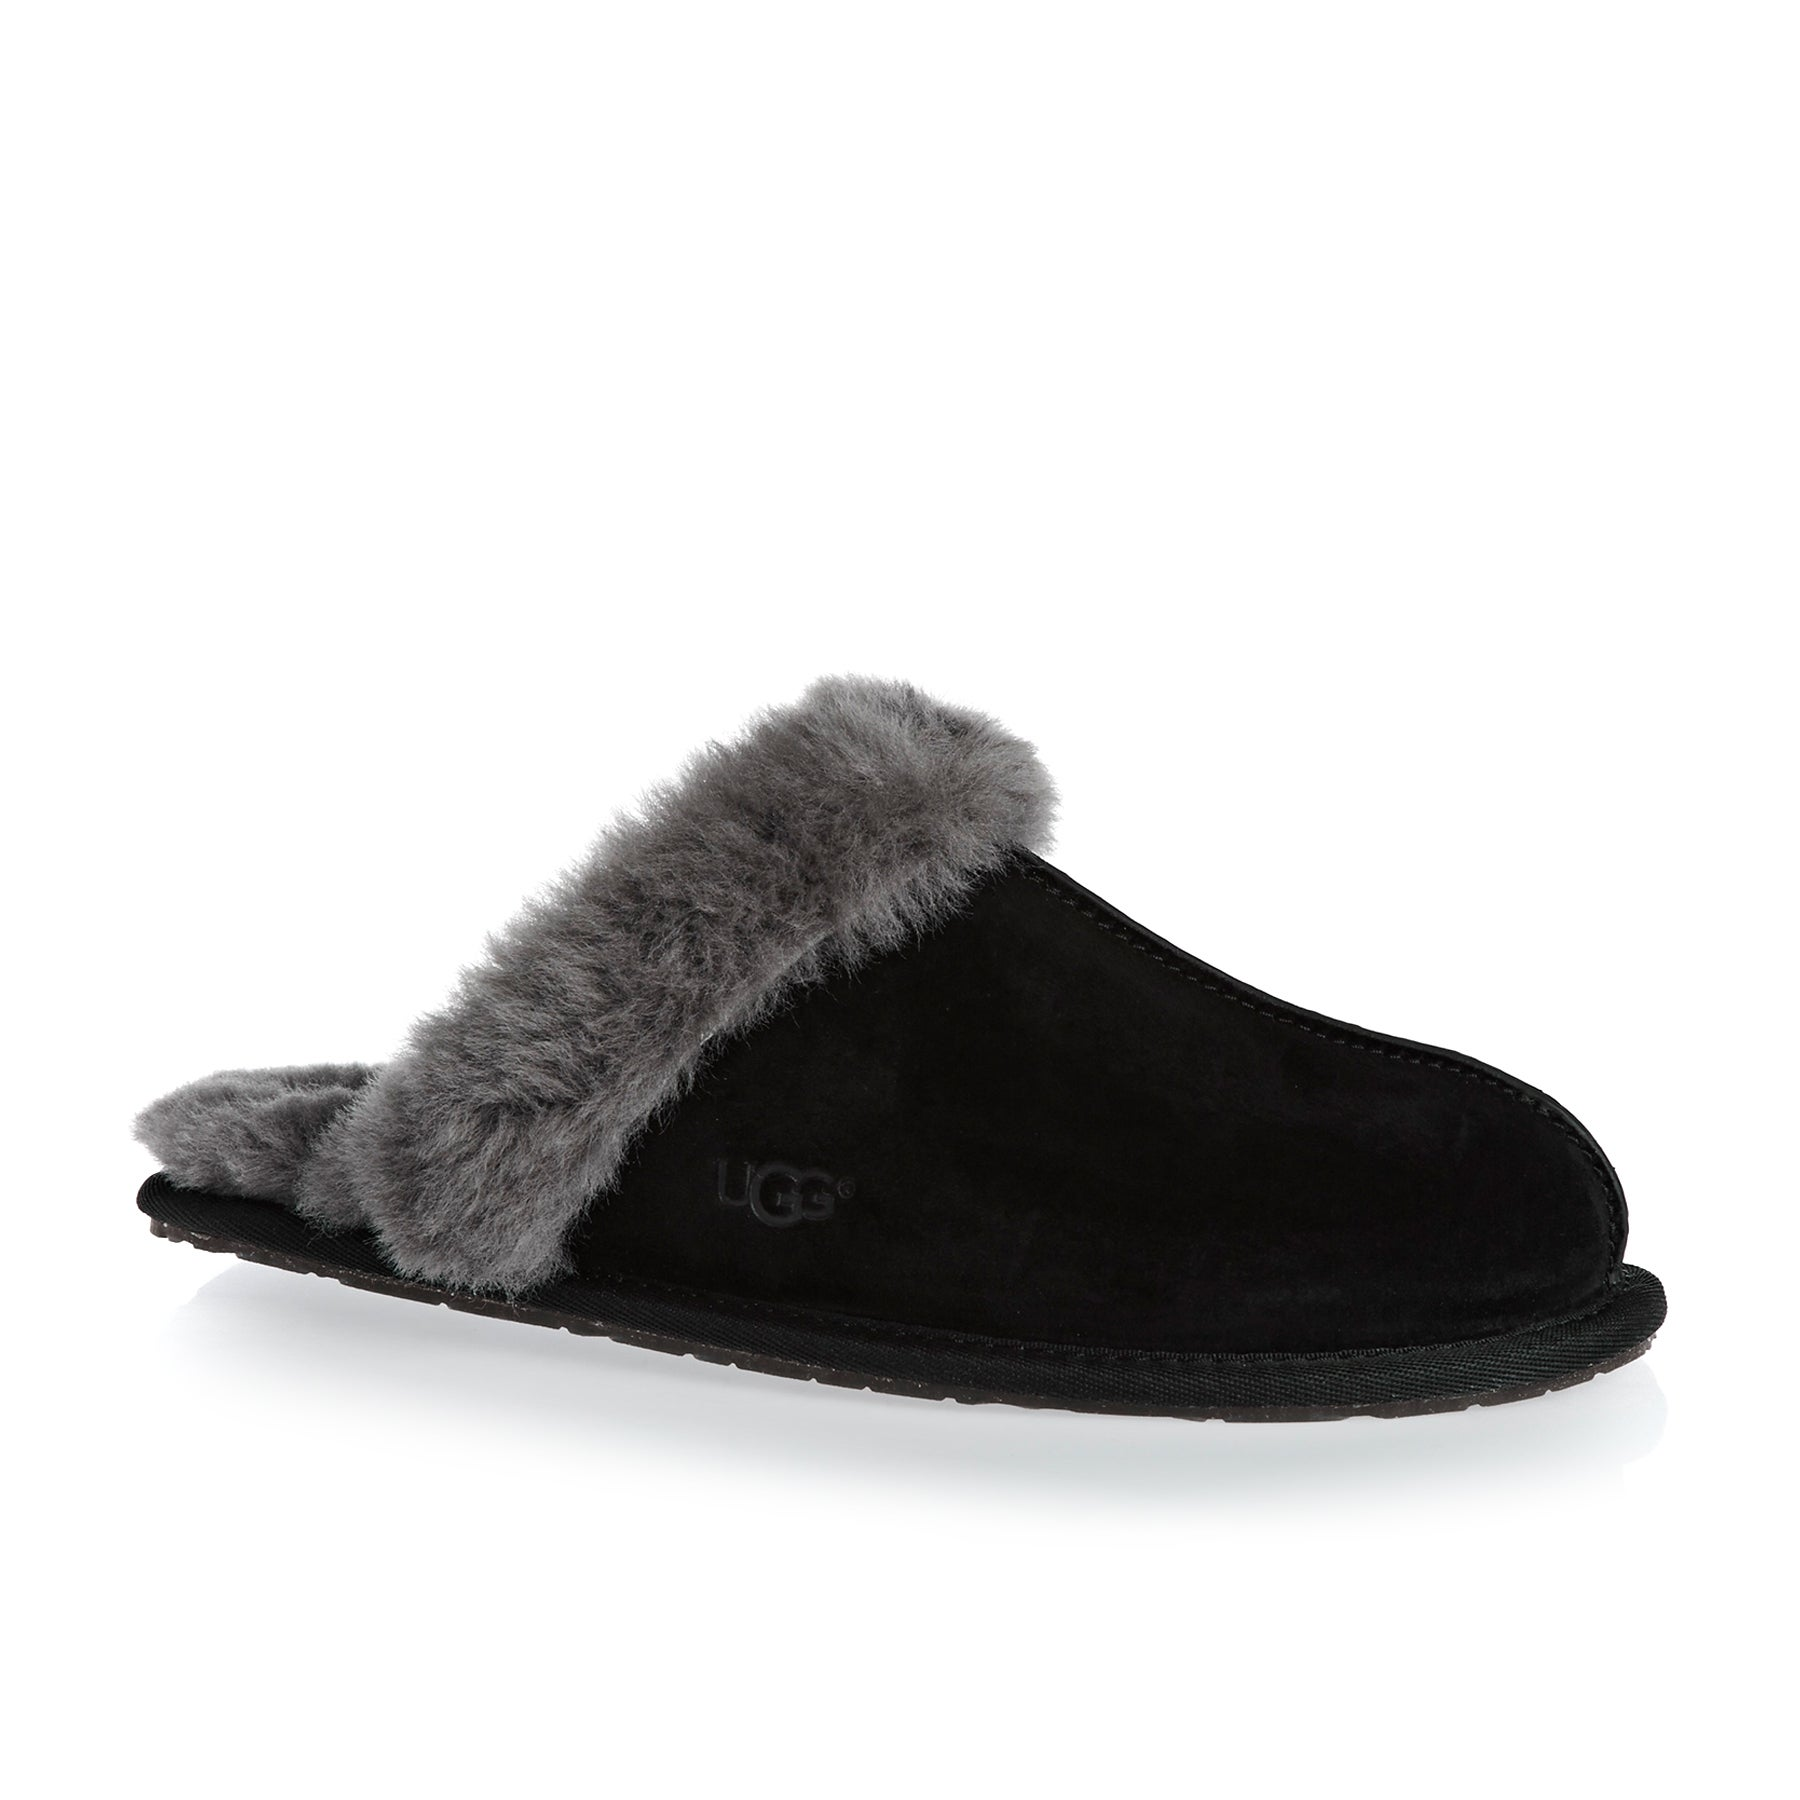 792b30f23 UGG Scuffette II Womens Slippers available from Surfdome